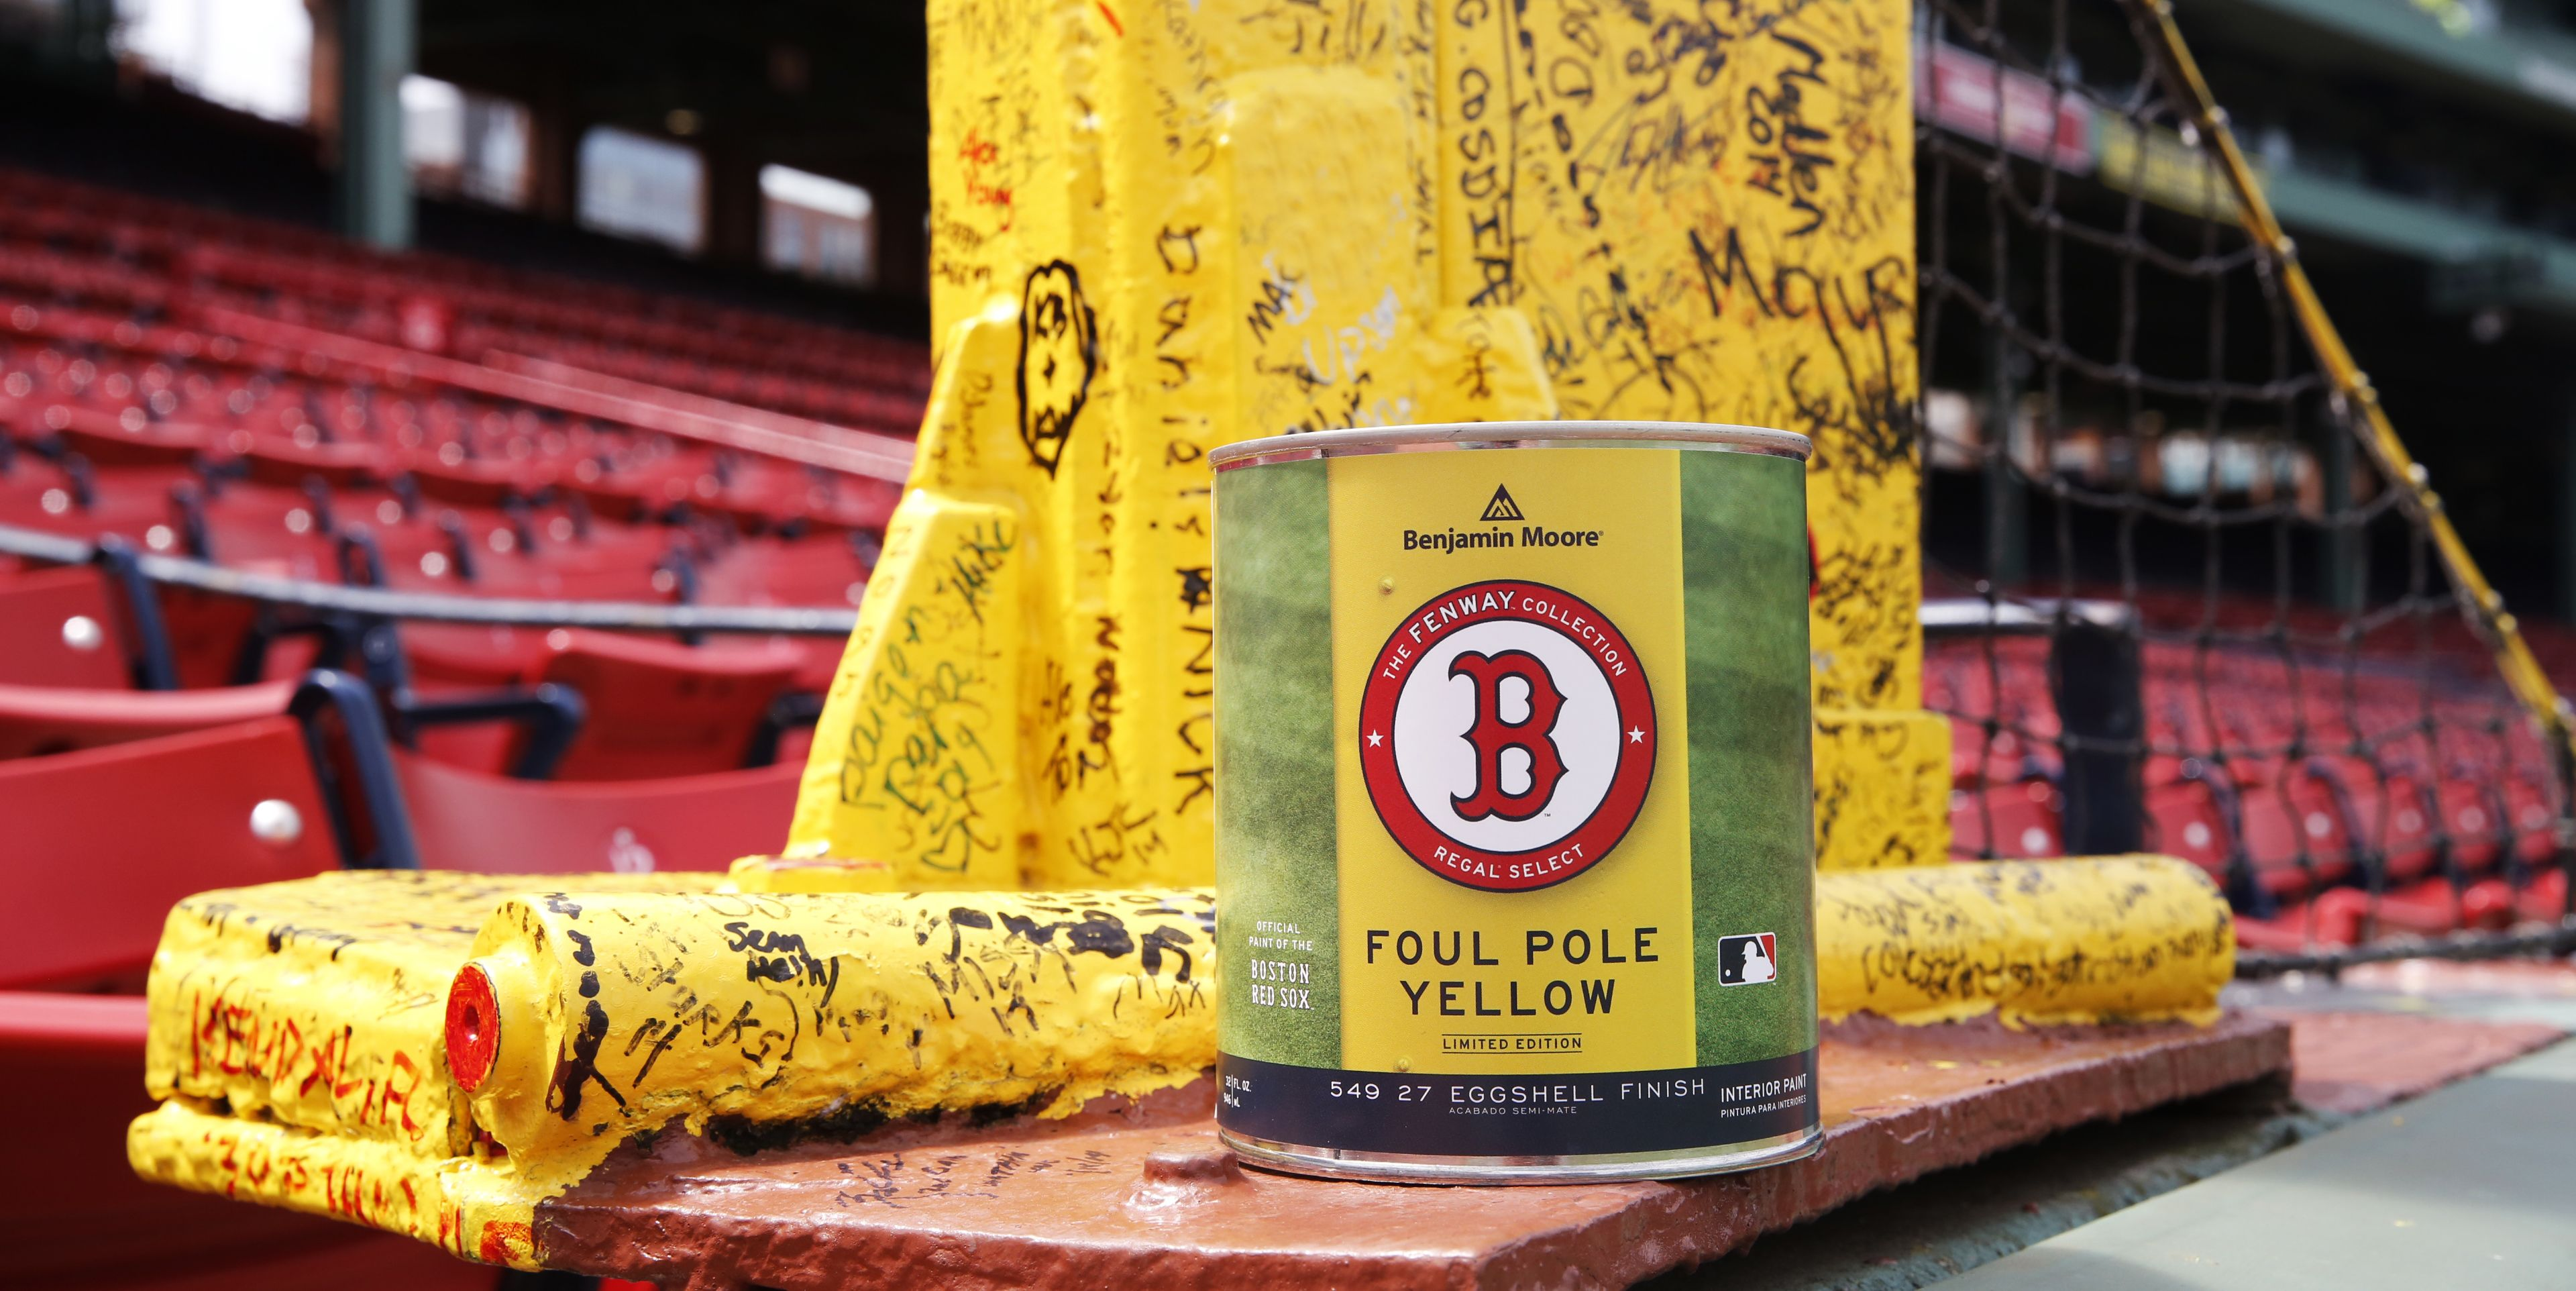 Foul Pole Yellow, The Fenway Collection Limited Edition Paint Colors ...